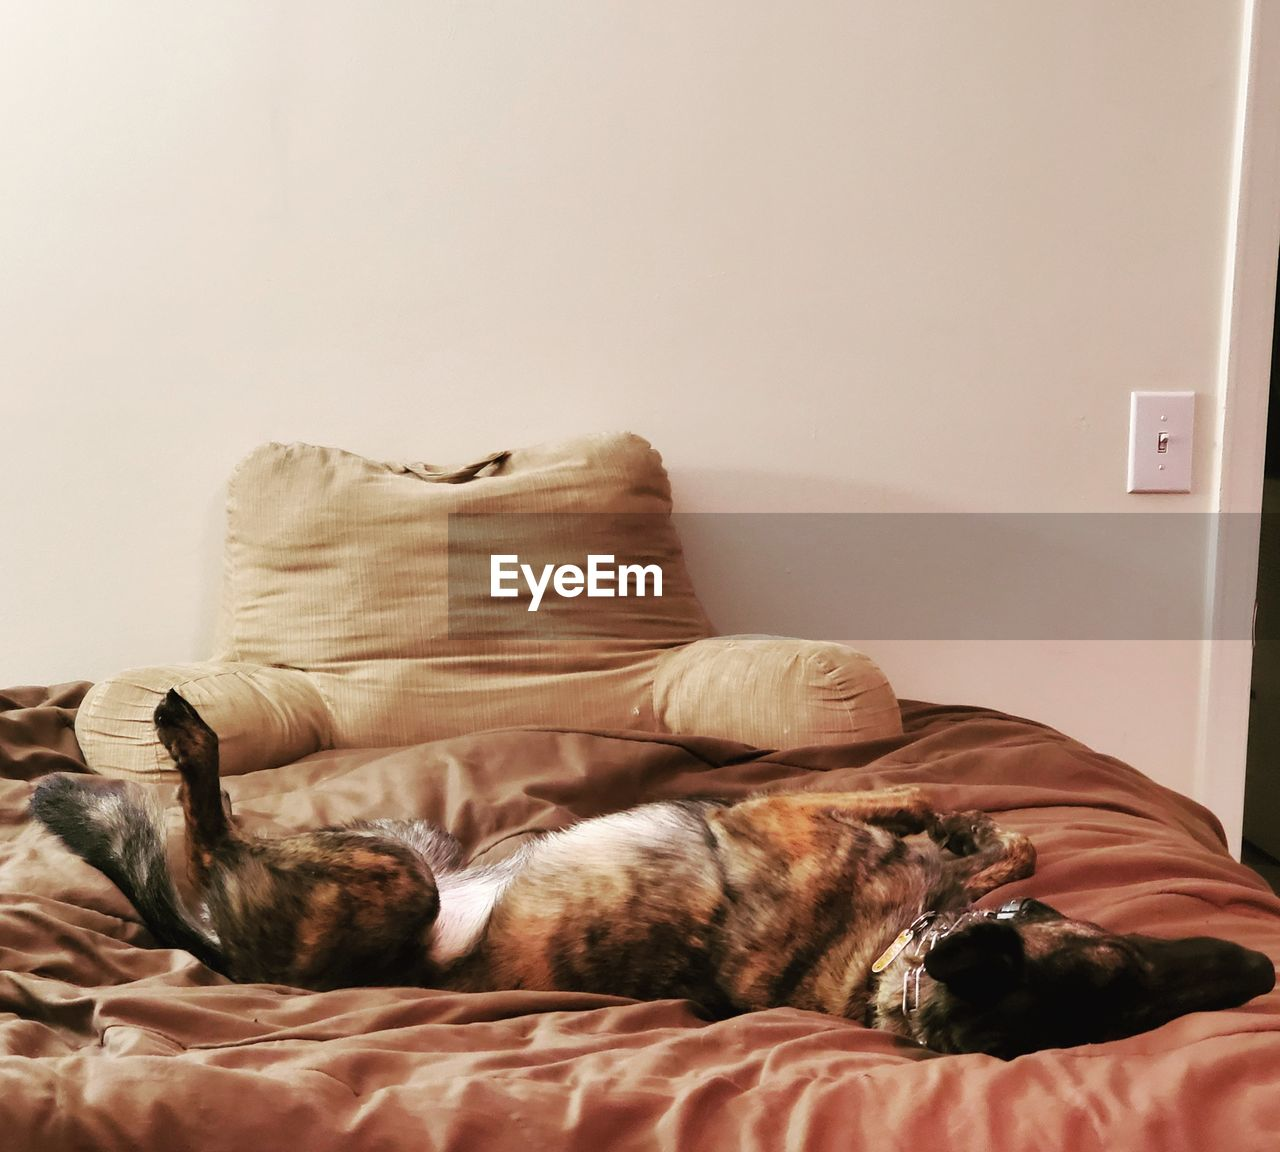 VIEW OF DOG SLEEPING ON BED